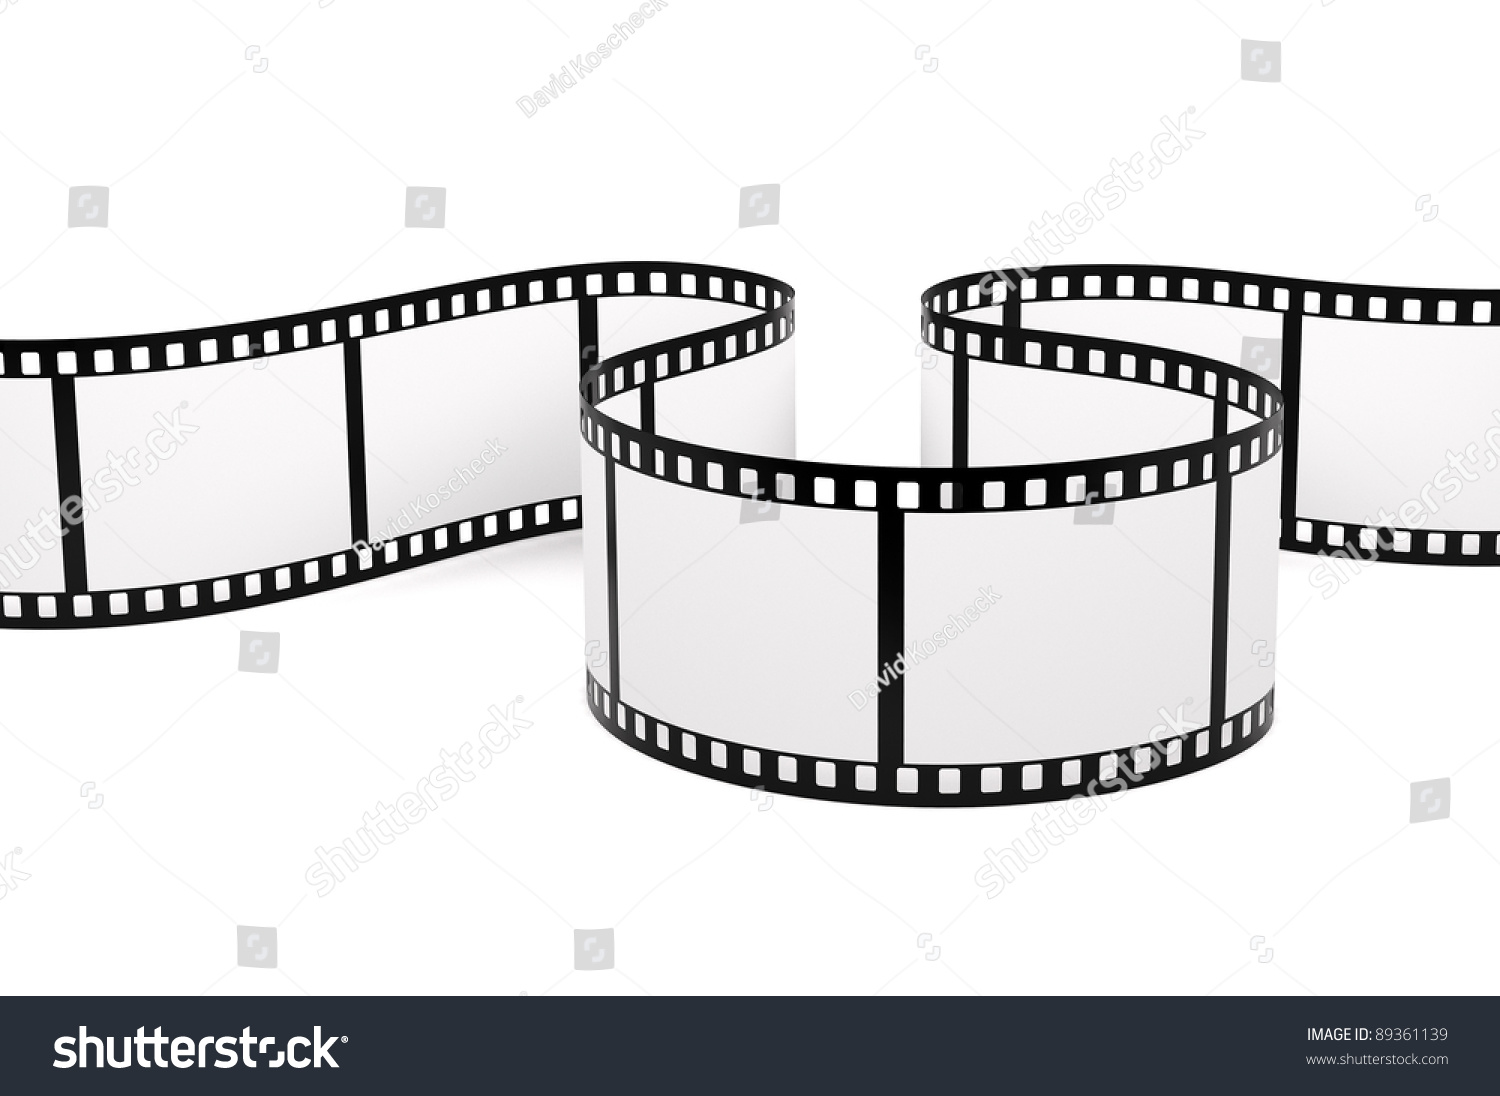 film strip stock illustration 89361139 shutterstock. Black Bedroom Furniture Sets. Home Design Ideas